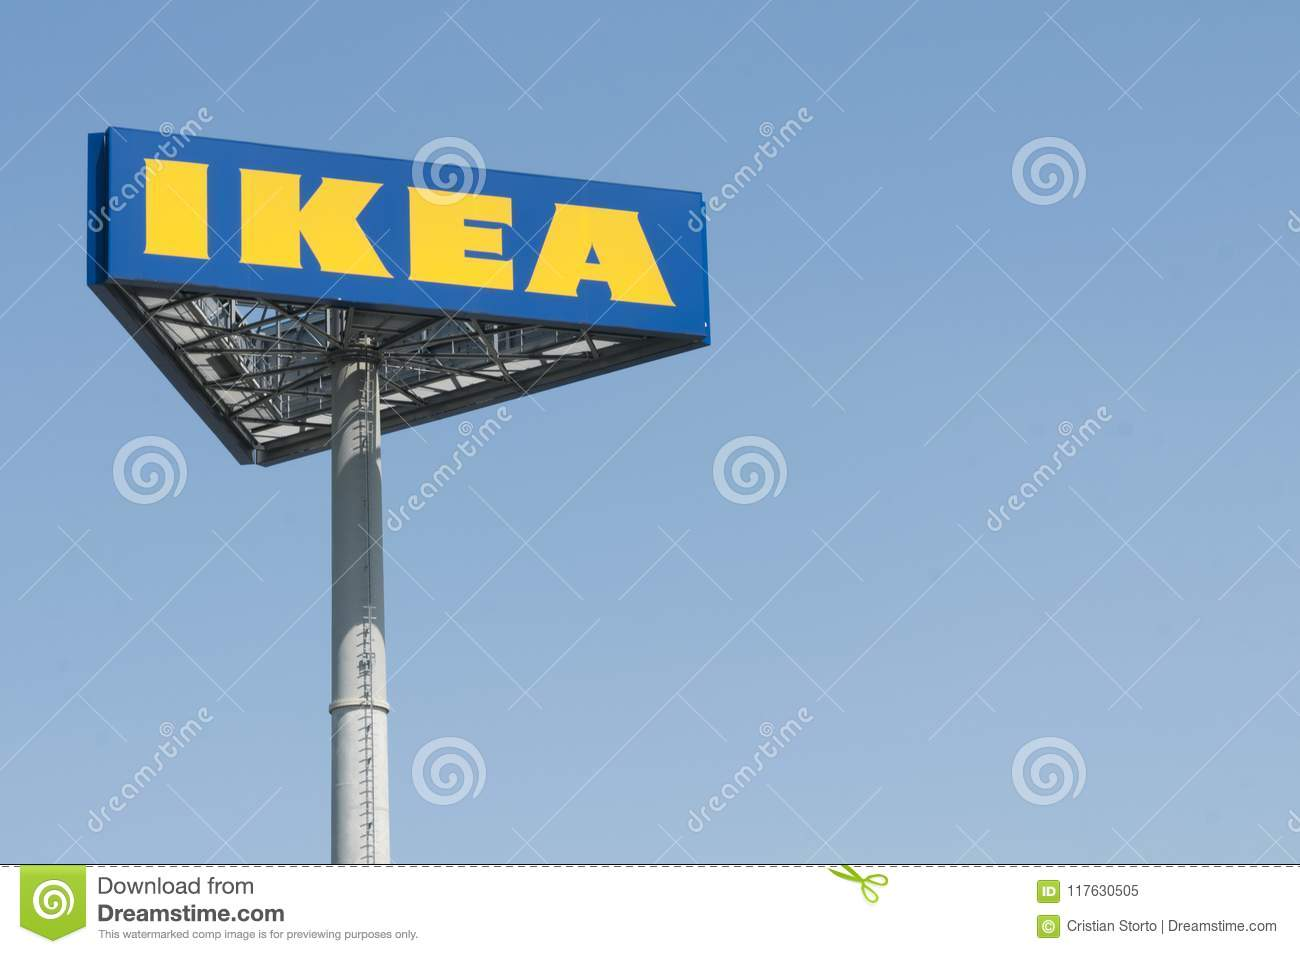 Ikea Store Pole Sign Editorial Image Image Of Advertising 117630505